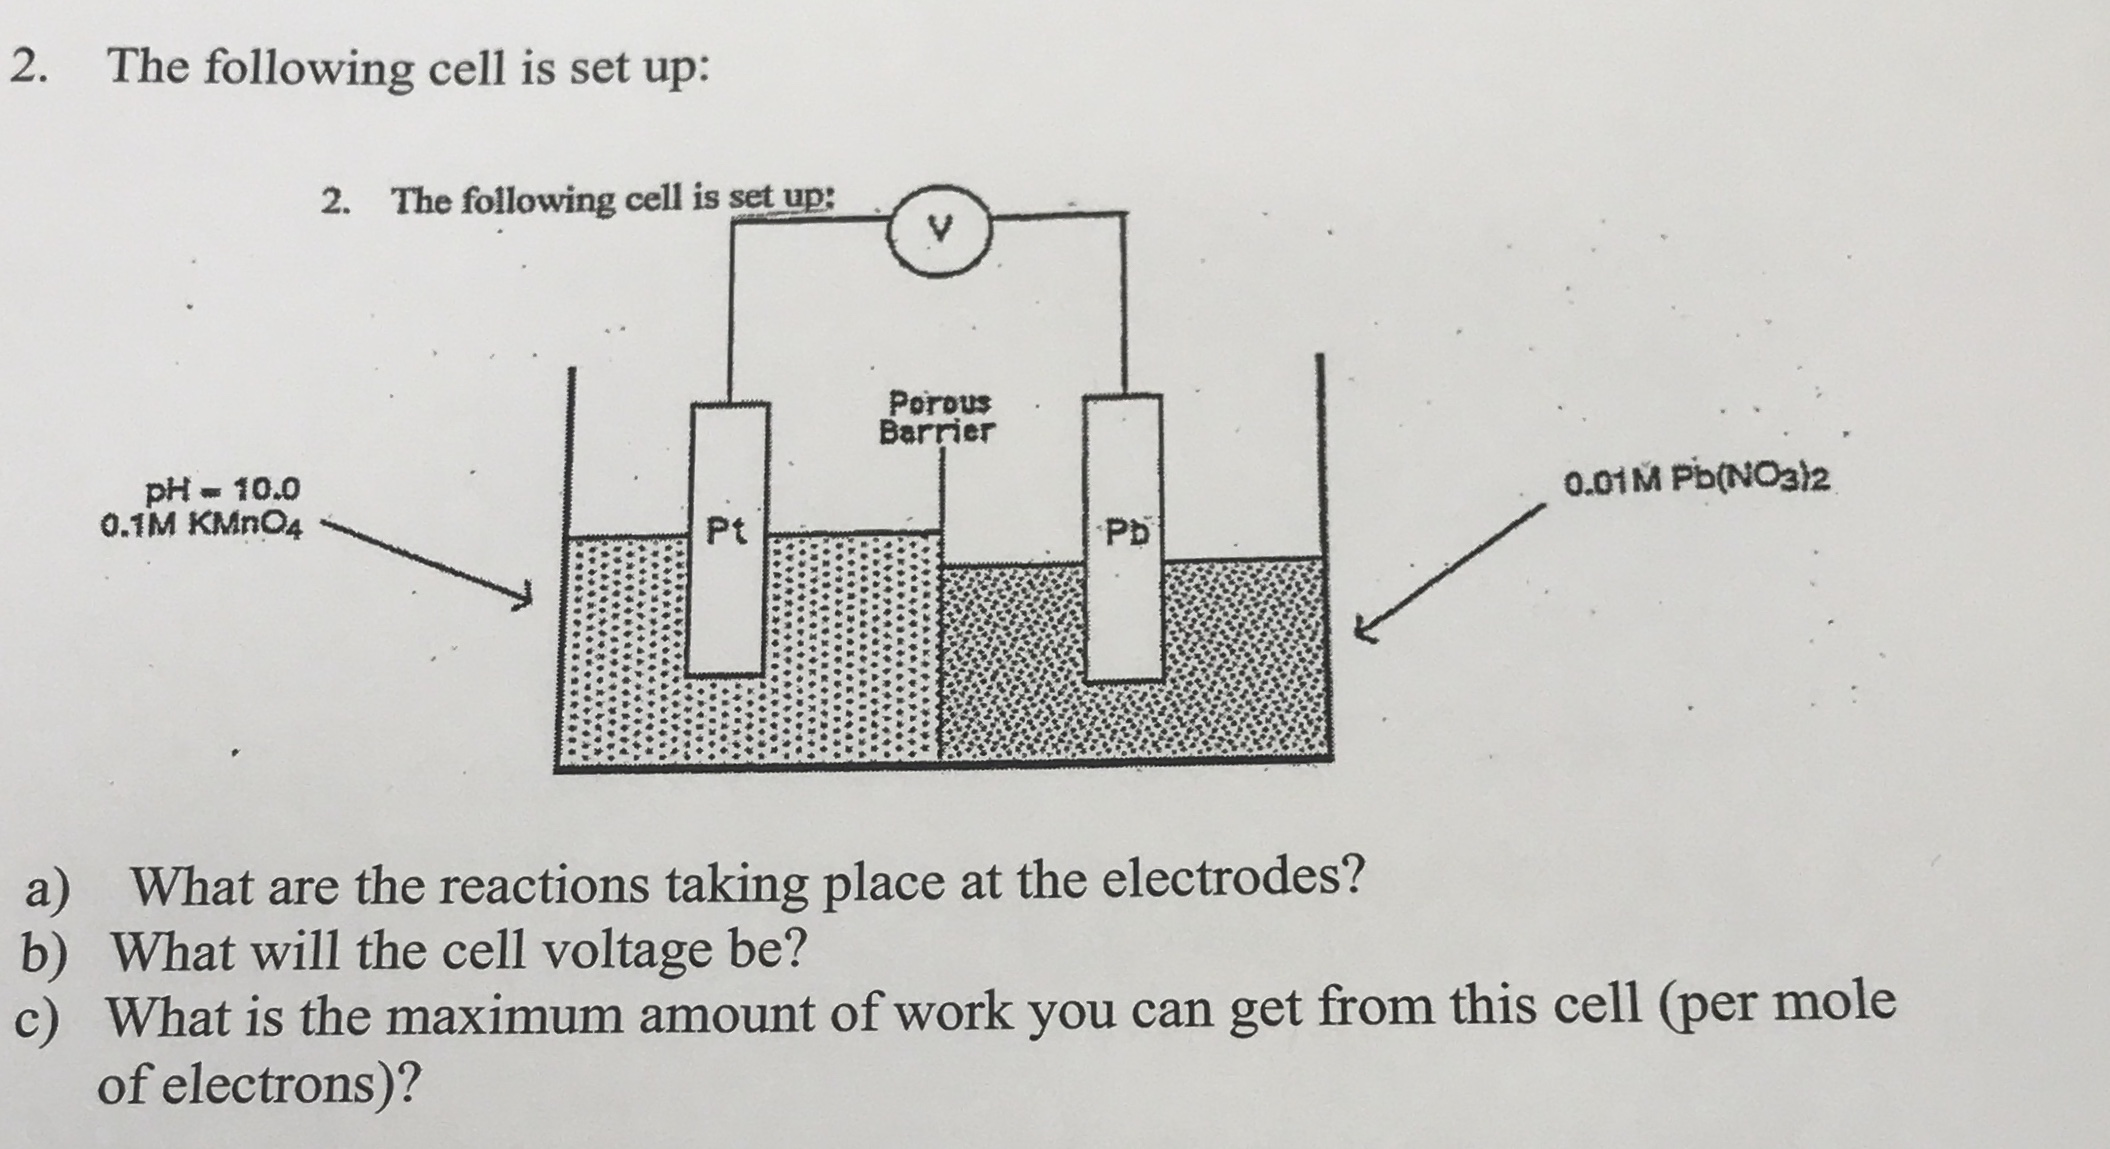 2. The following cell is set up: 2. The following cell is set up: Porous Barrier 0.01M Pb(NO32 pH - 10.0 0.1M KMN04 Pt Pb a) What are the reactions taking place at the electrodes? b) What will the cell voltage be? c) What is the maximum amount of work you can get from this cell (per mole of electrons)?